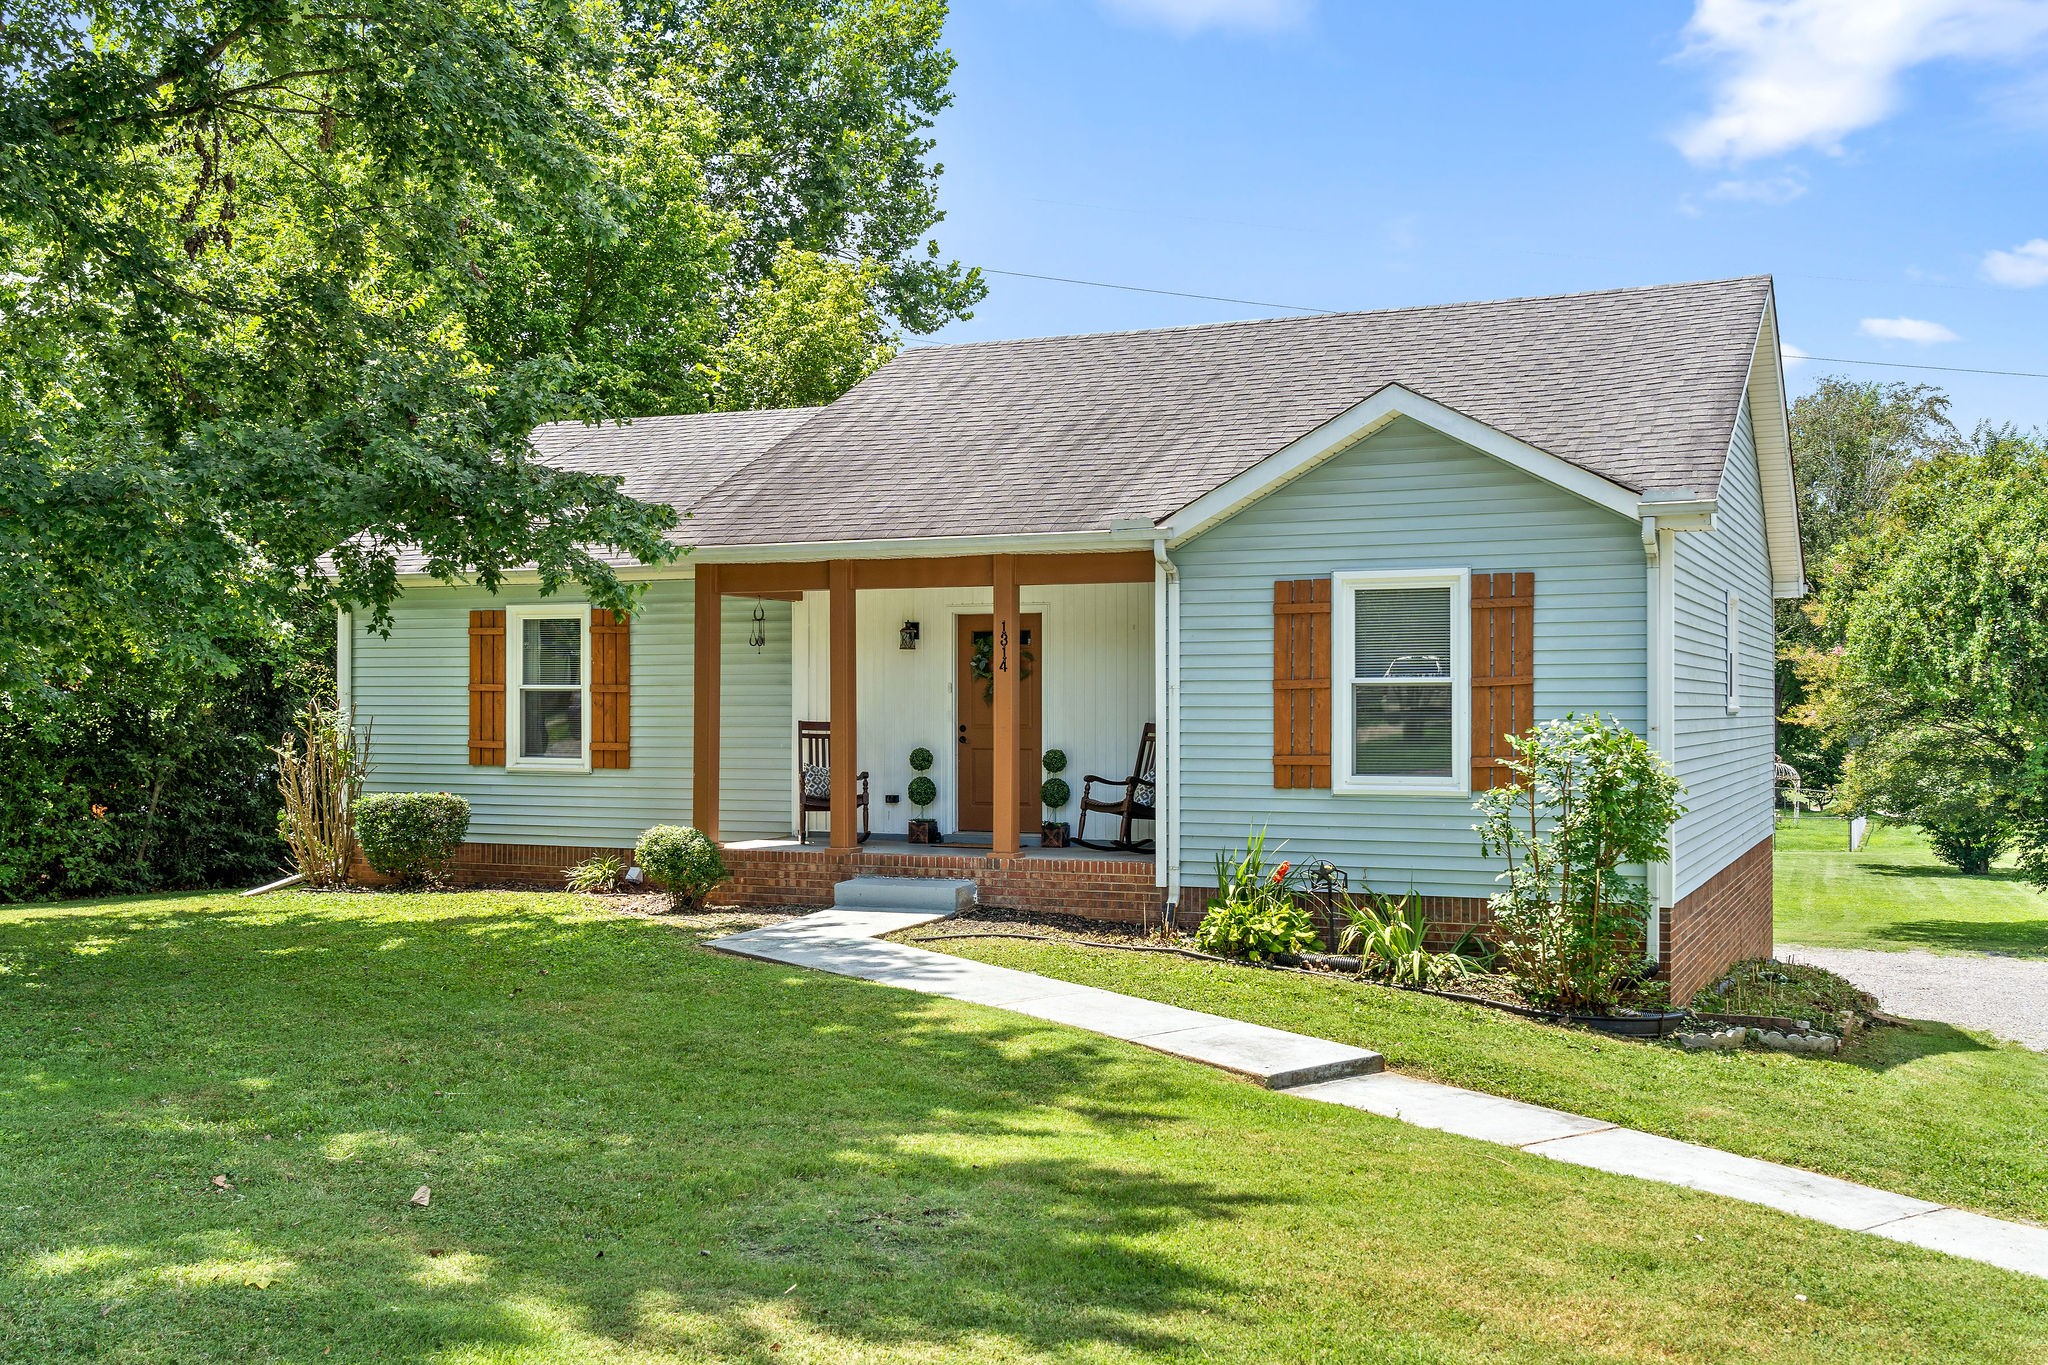 Check Out This Charming Modern Farmhouse Located Near Rossview & Exit 8! - Oversized Backyard at Almost 1/2 Acres Lot Size - Windows, Carpet, Flooring, & Appliances All Updated in 2020 - Shiplap Entryway - Picture Perfect Kitchen with Granite Counters, Subway Tile Backsplash and Stainless Steel Appliances - Renovated Bathrooms